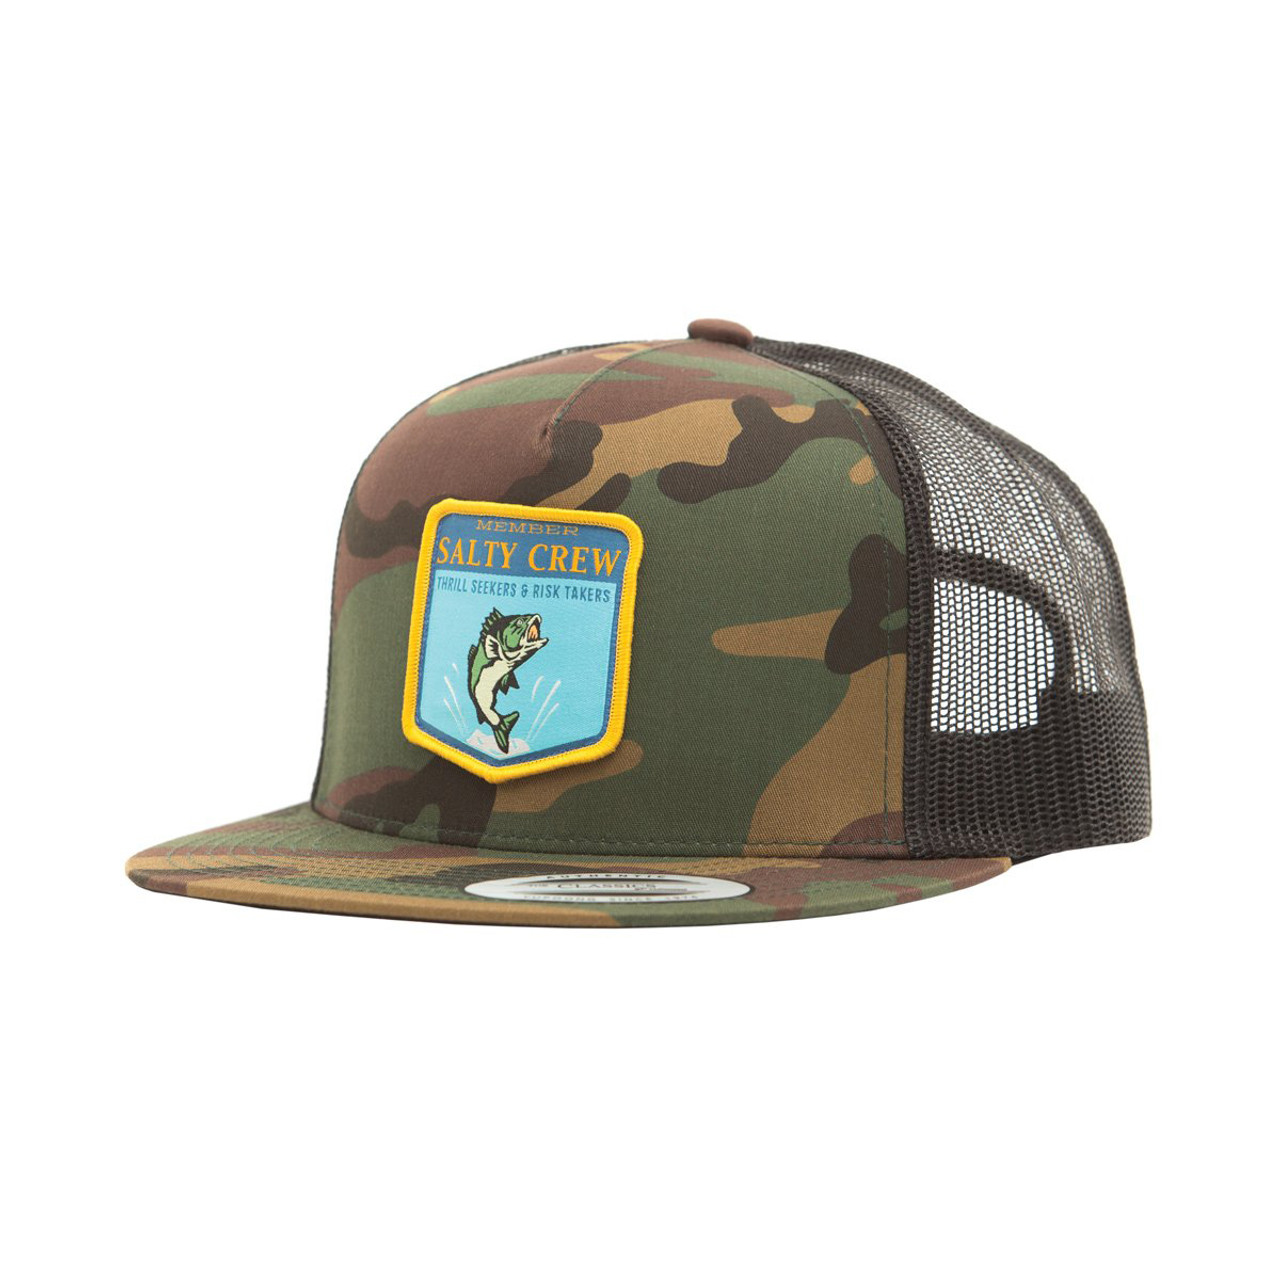 520a50a401f Bass Badge Trucker Hat - Camo - Val Surf